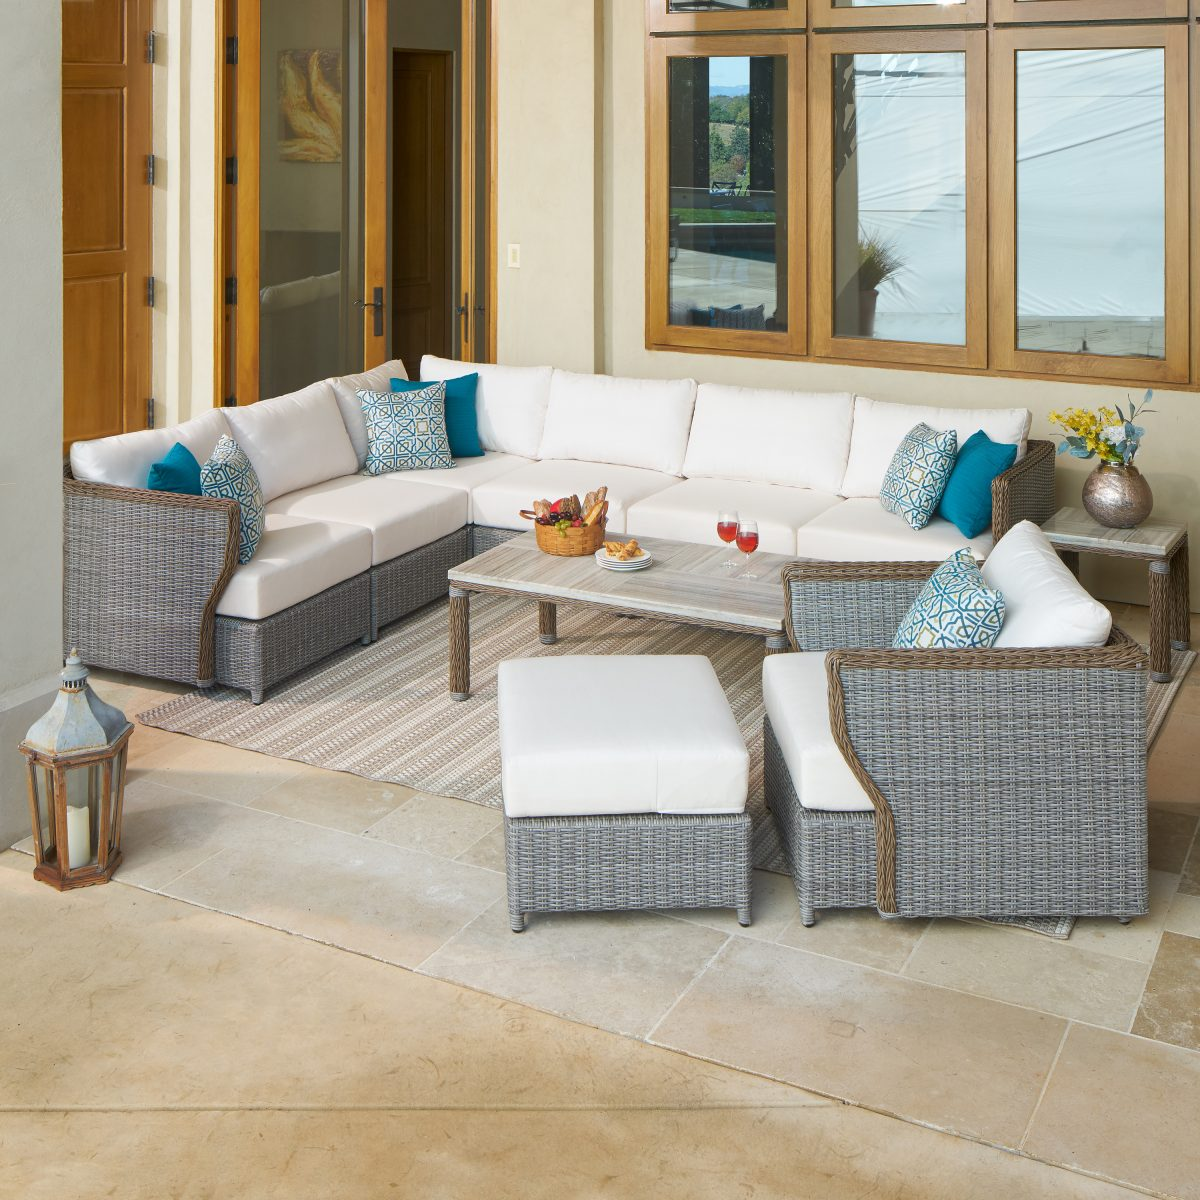 how to arrange patio furniture - cozy furniture near wall